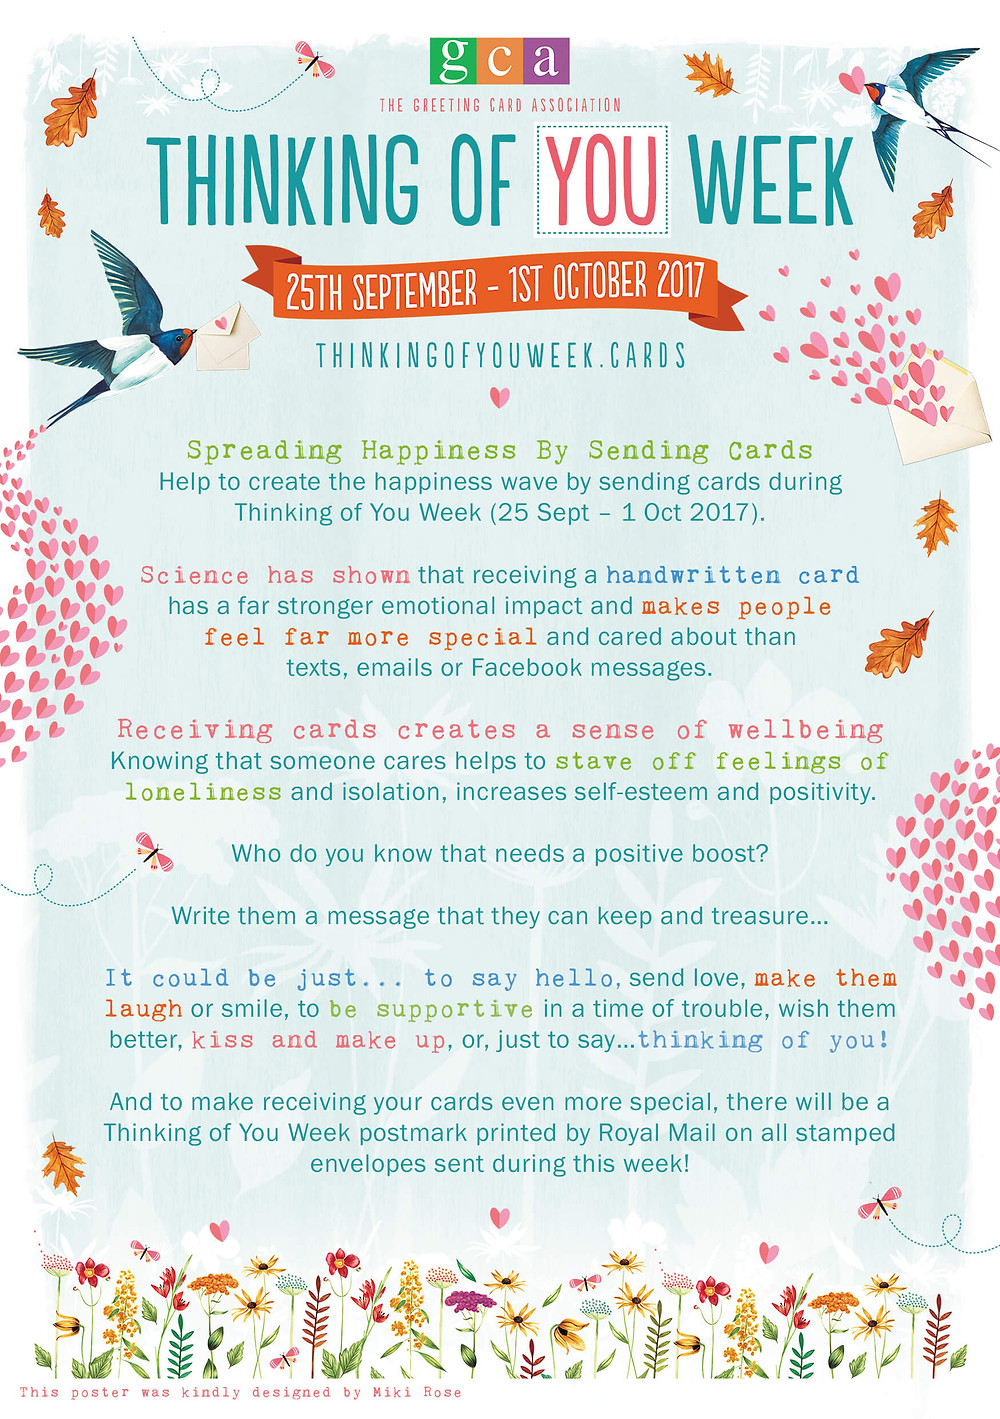 Thinking Of You Week Flyer - Send a Card, Deliver a Smile